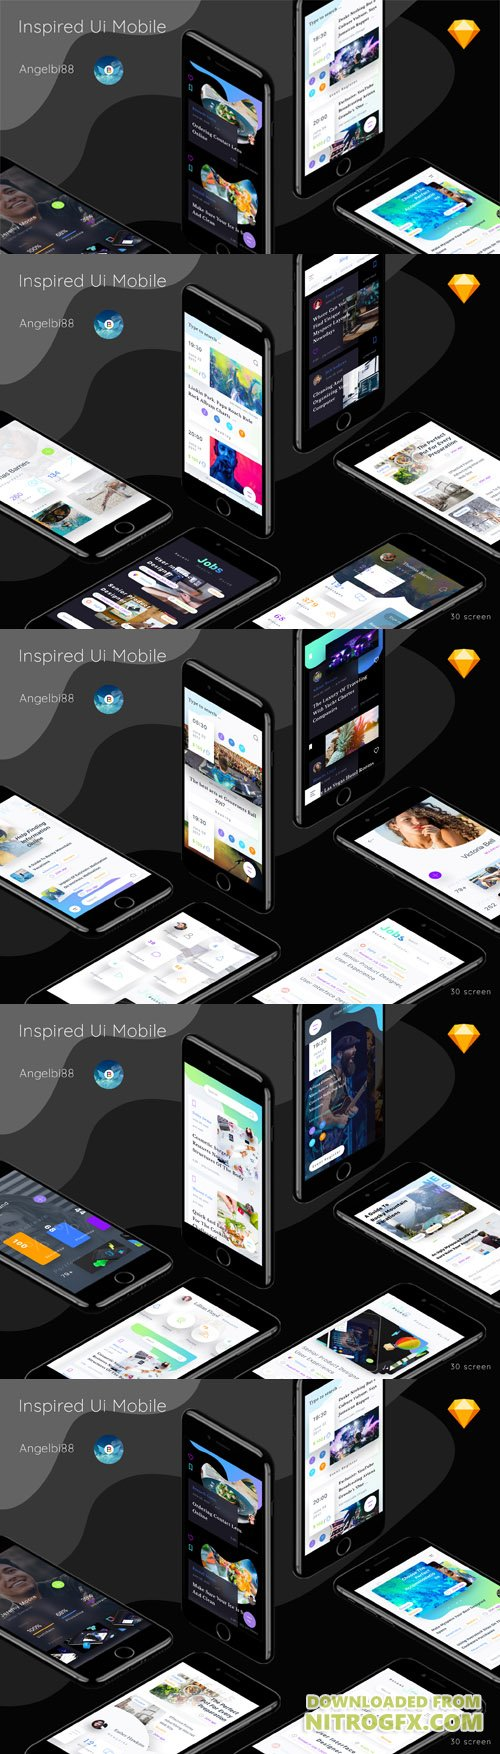 ThemeForest - Inspired Ui Mobile Part 1 - 20405227